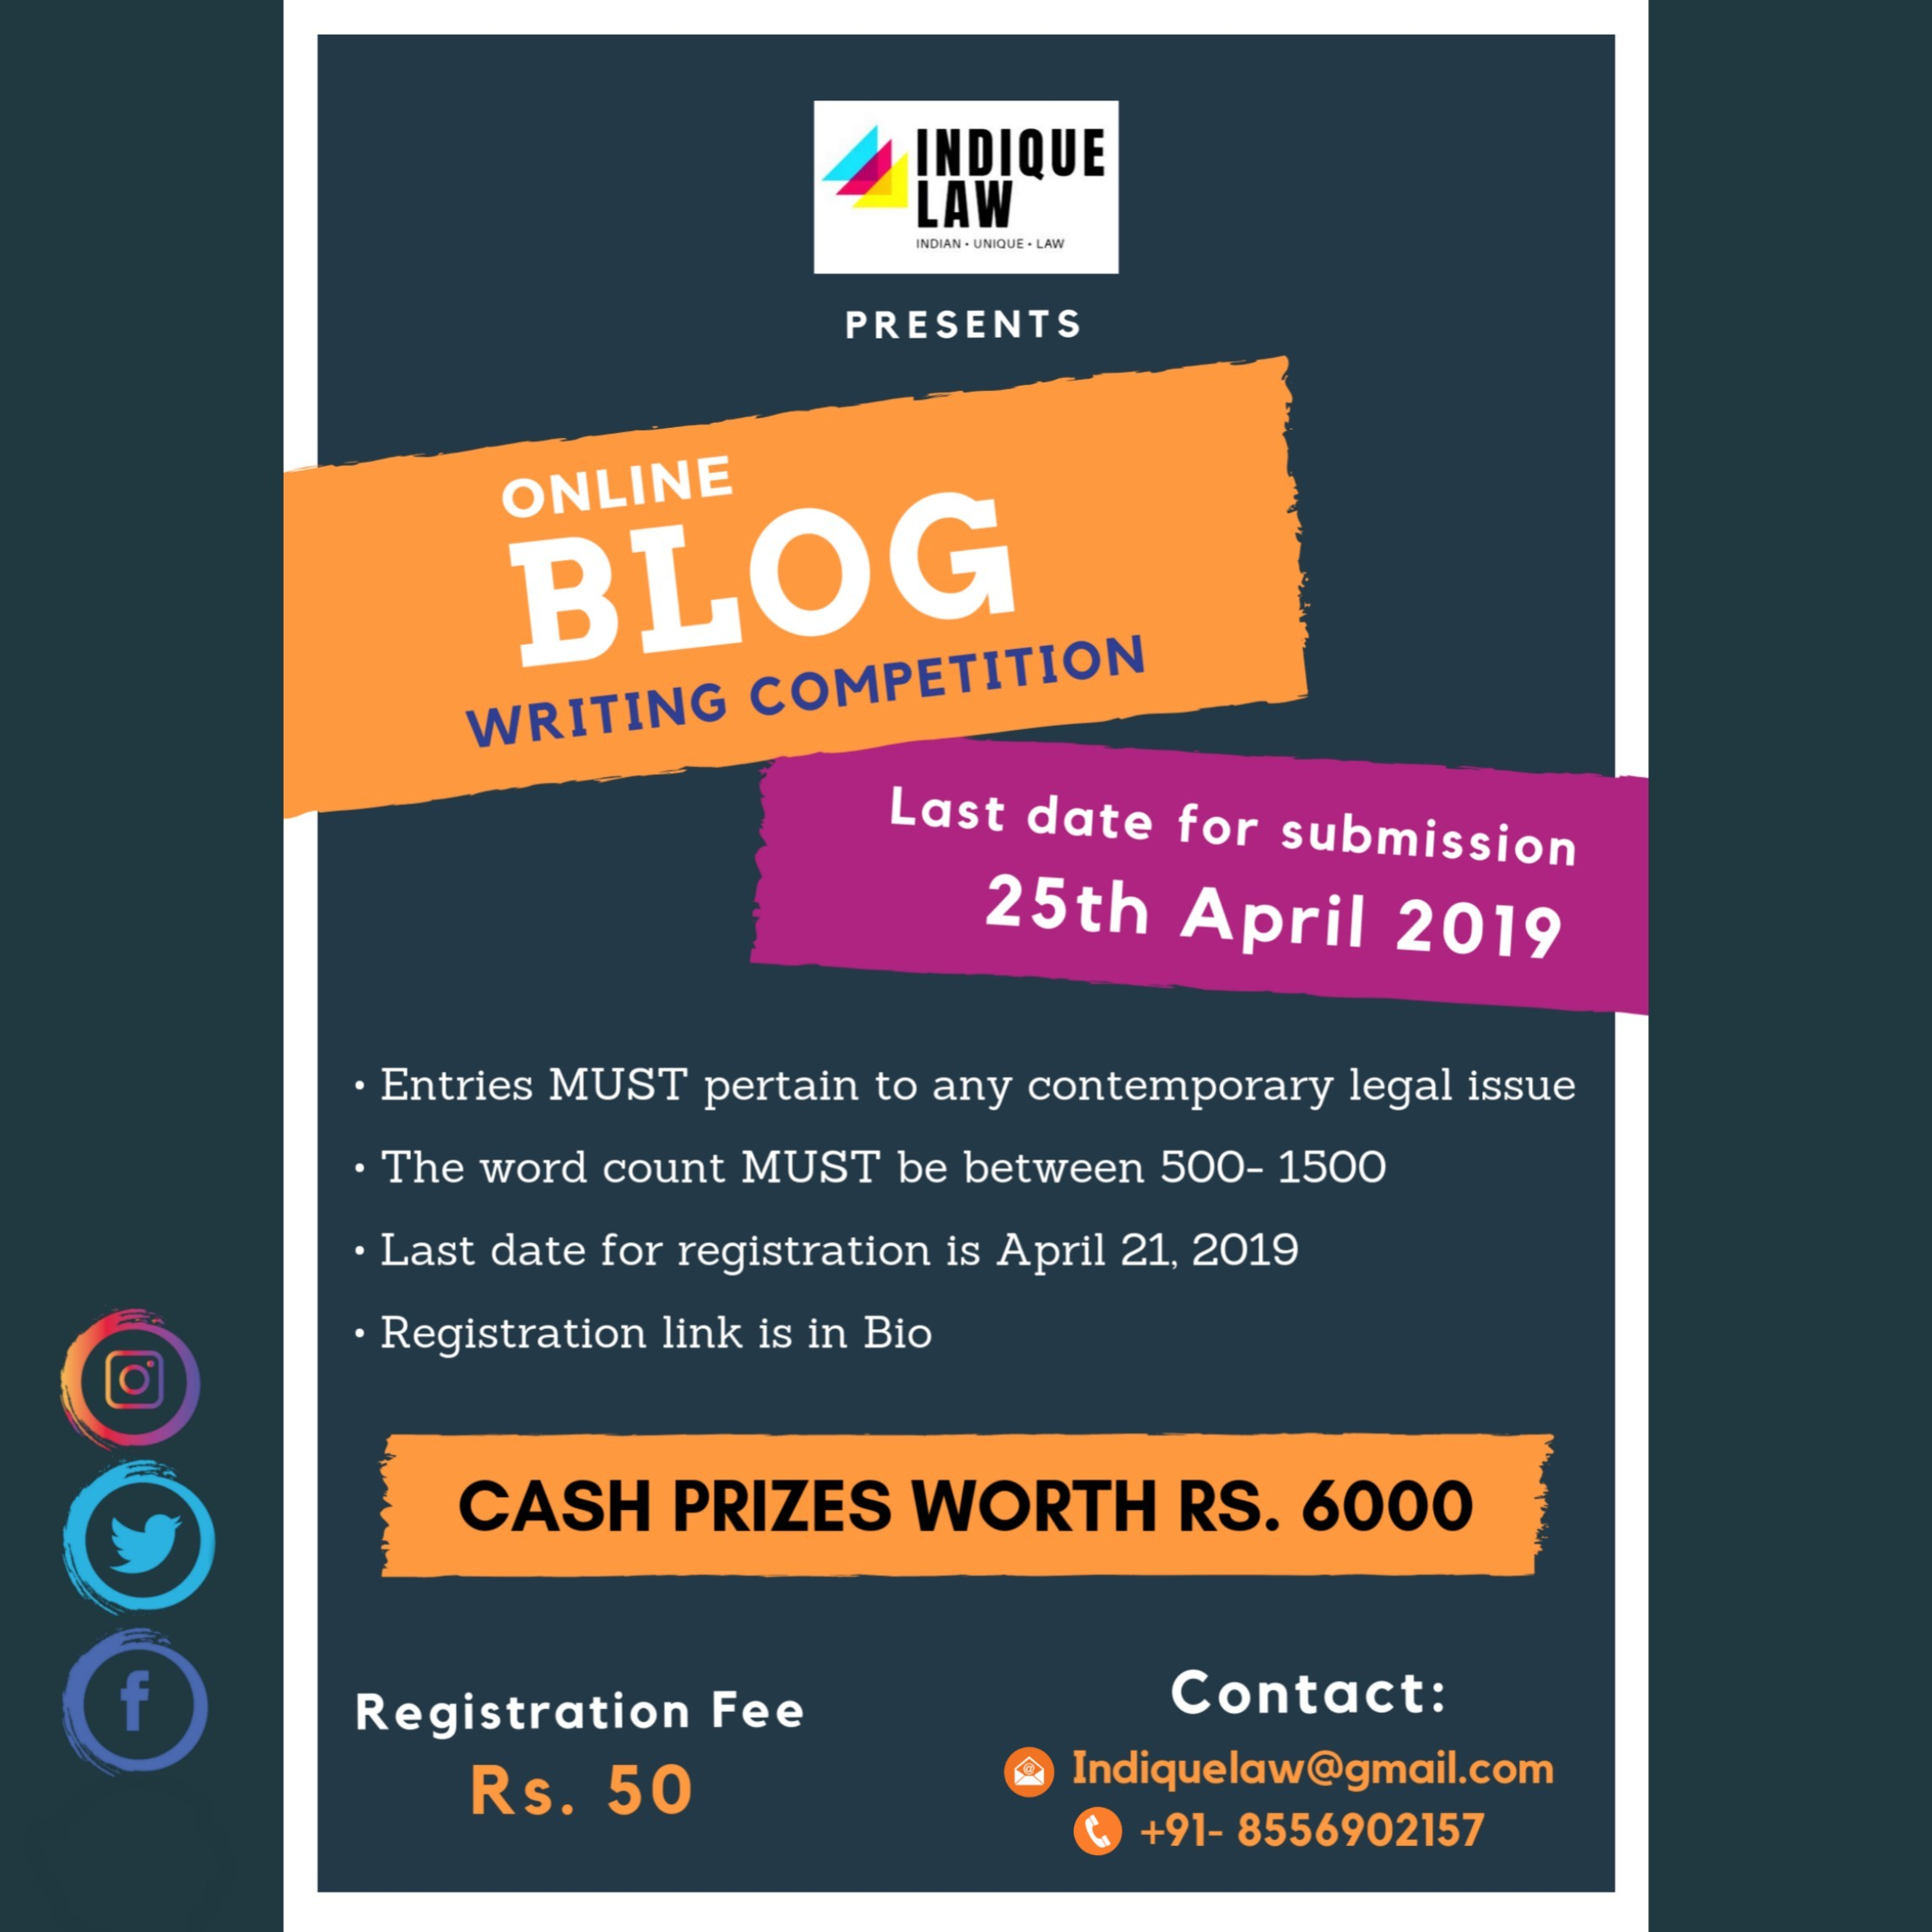 Indique Law Online Blog Writing Competition 2019 - LawOF